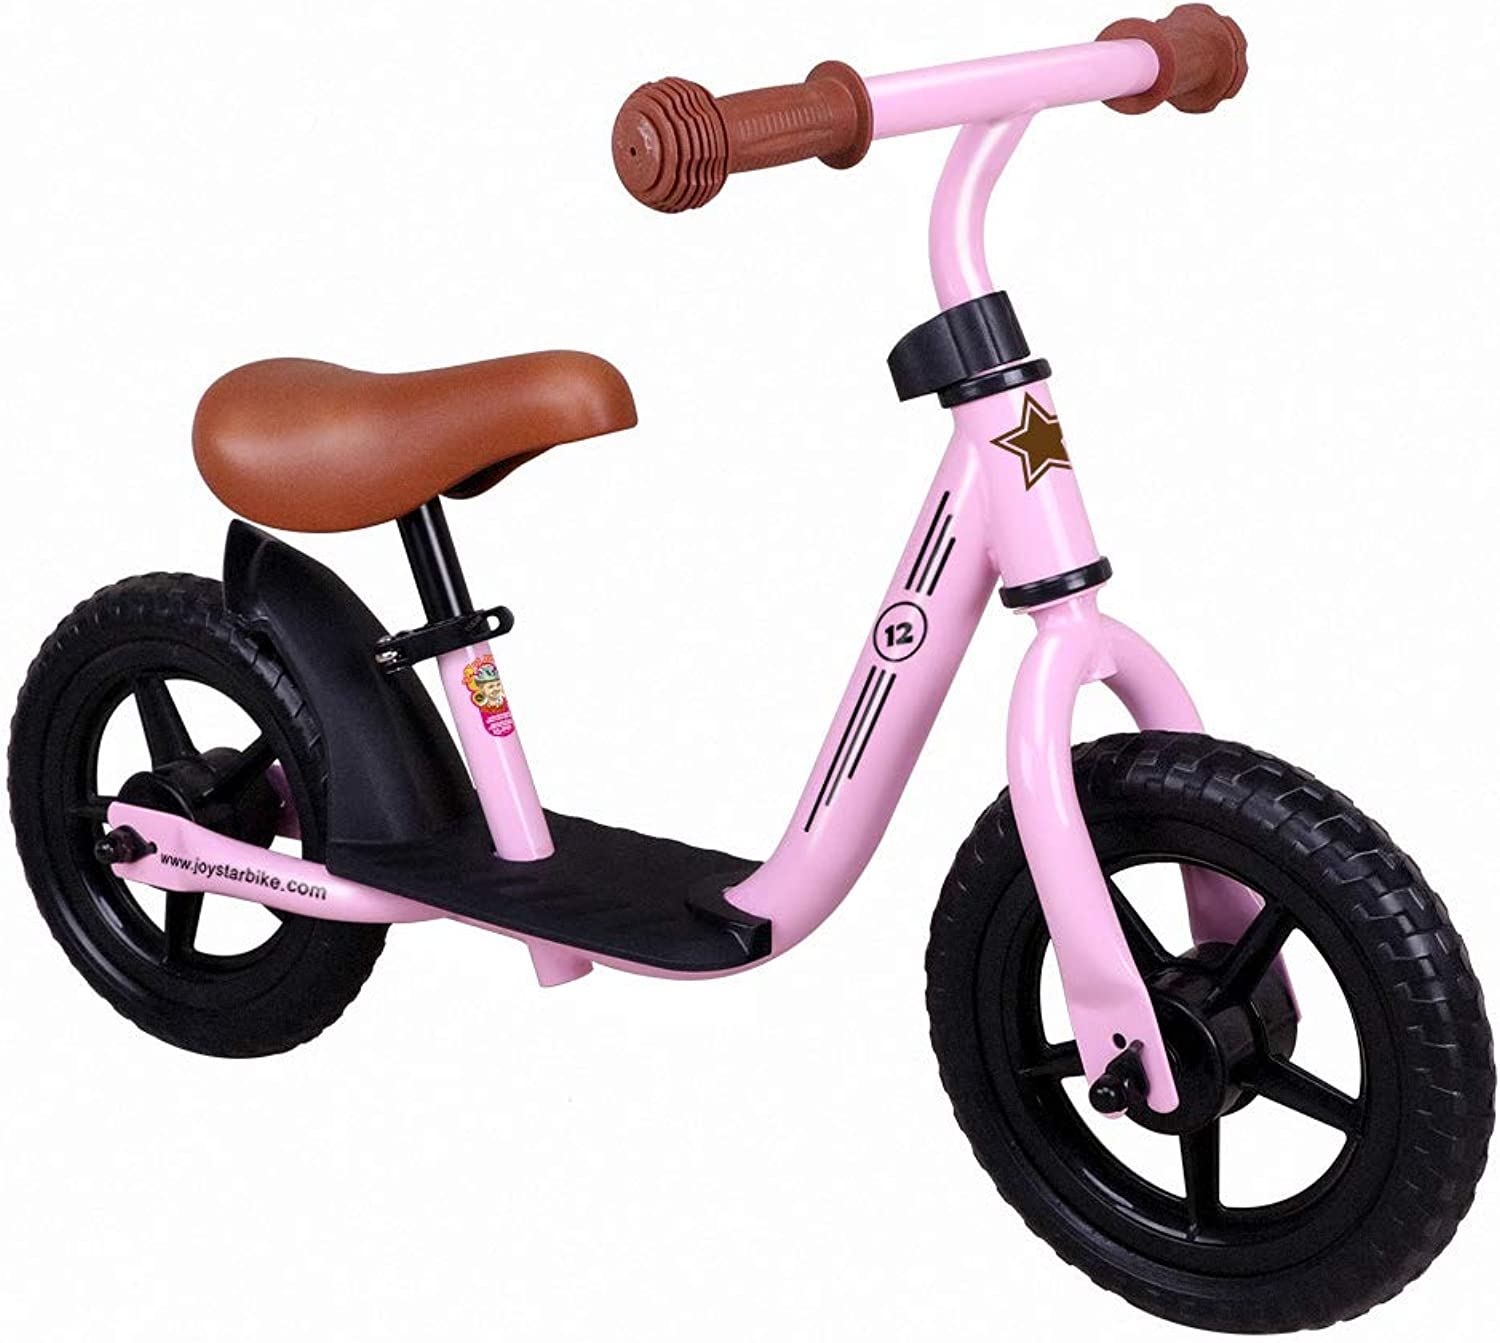 JOYSTAR 10 12 Inch Kids Balance Bike with Footrest for 15 Years Girls & Boys, Toddler Push Bike, (bluee, Green, Pink, Red)